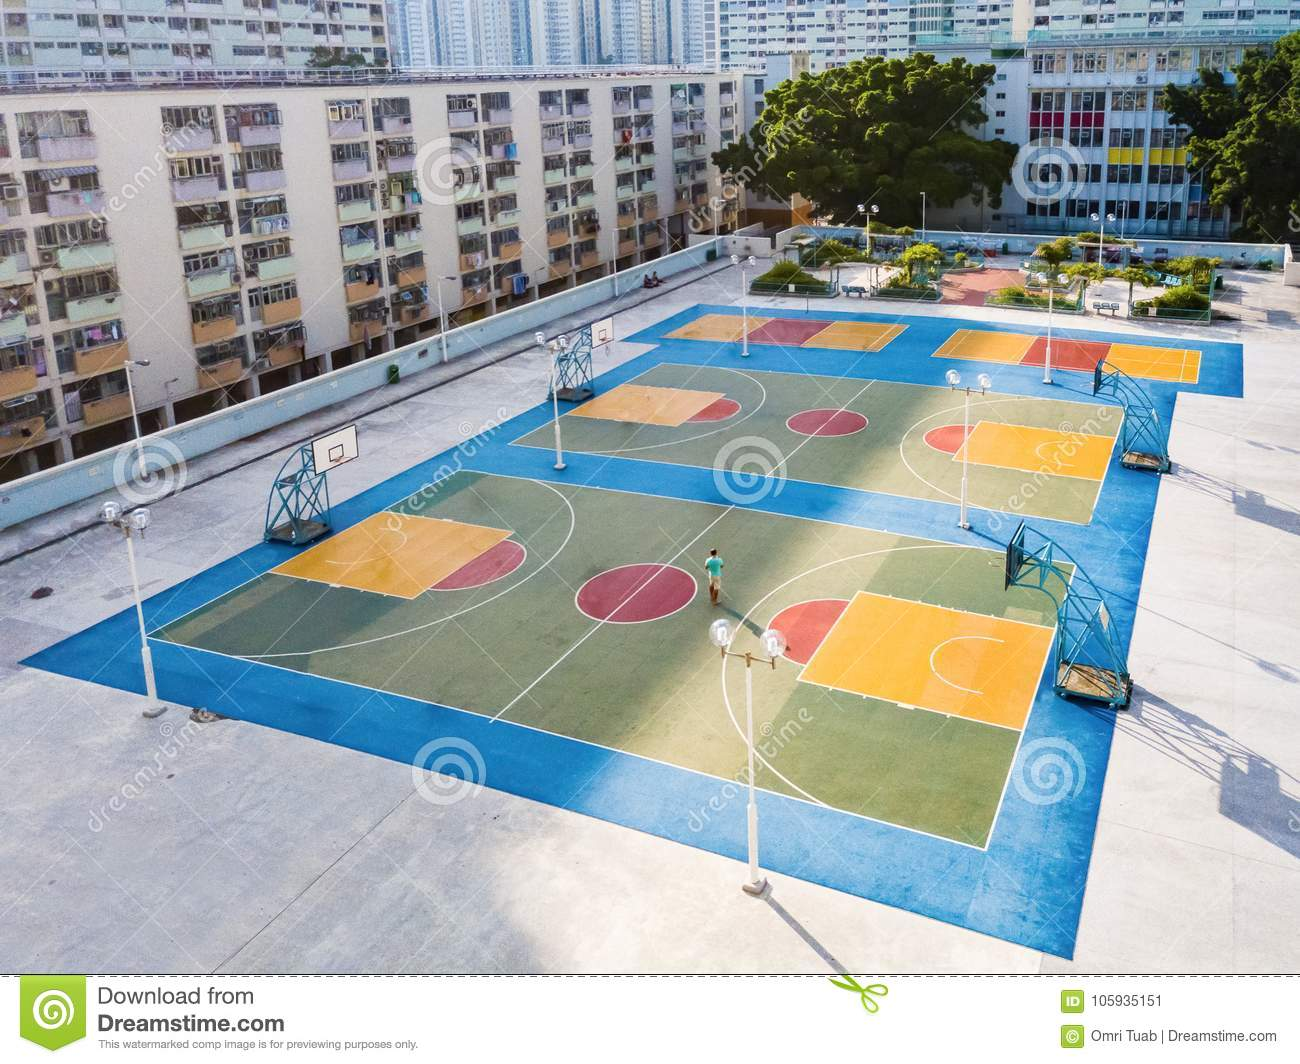 Choi Hung colorful basketball court